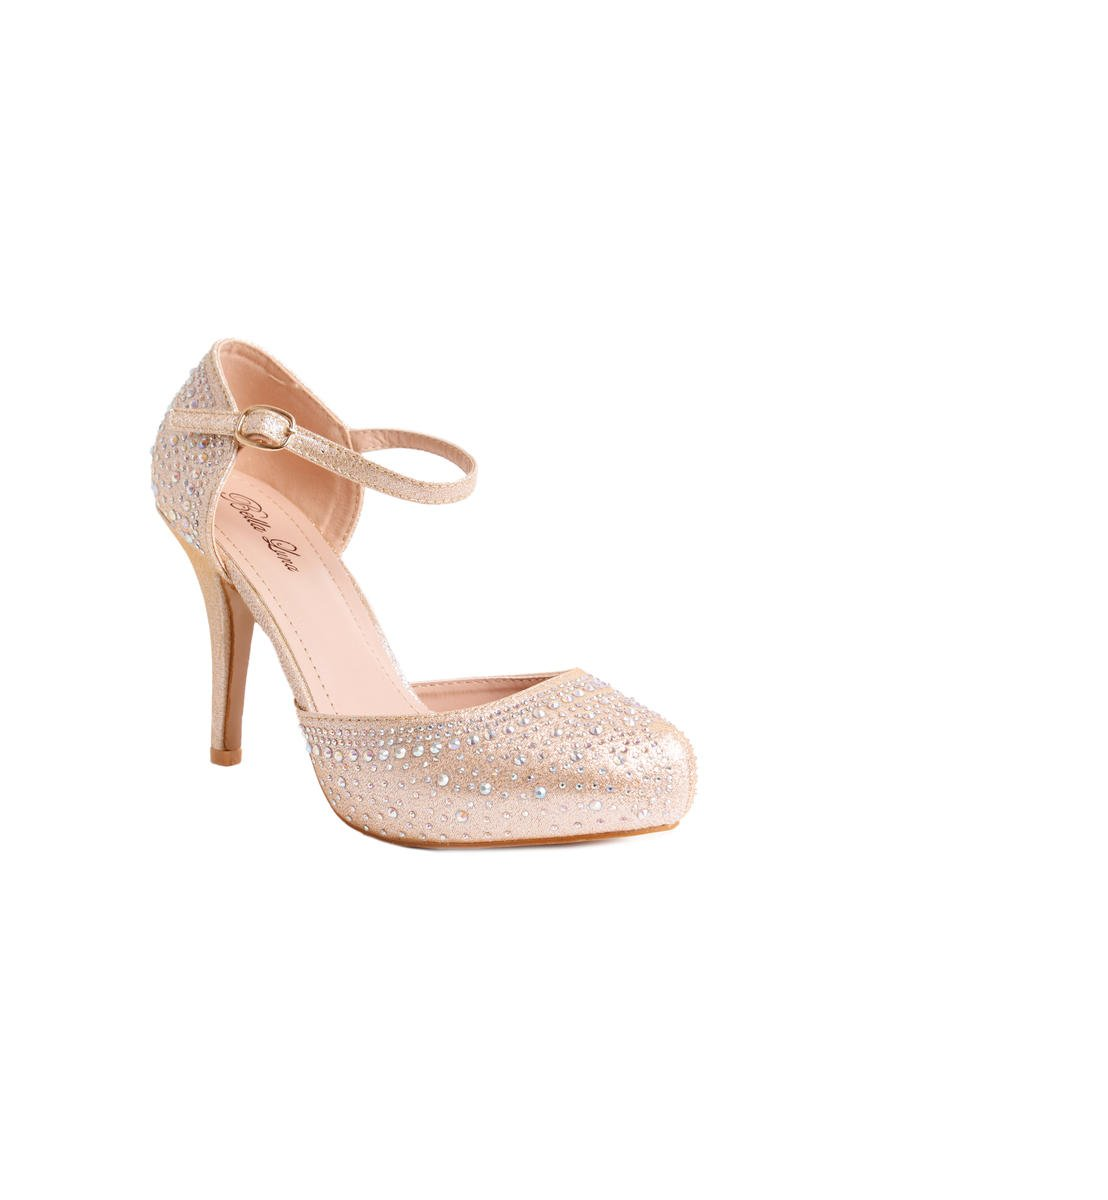 Embellished Platform Closed Toe Heel